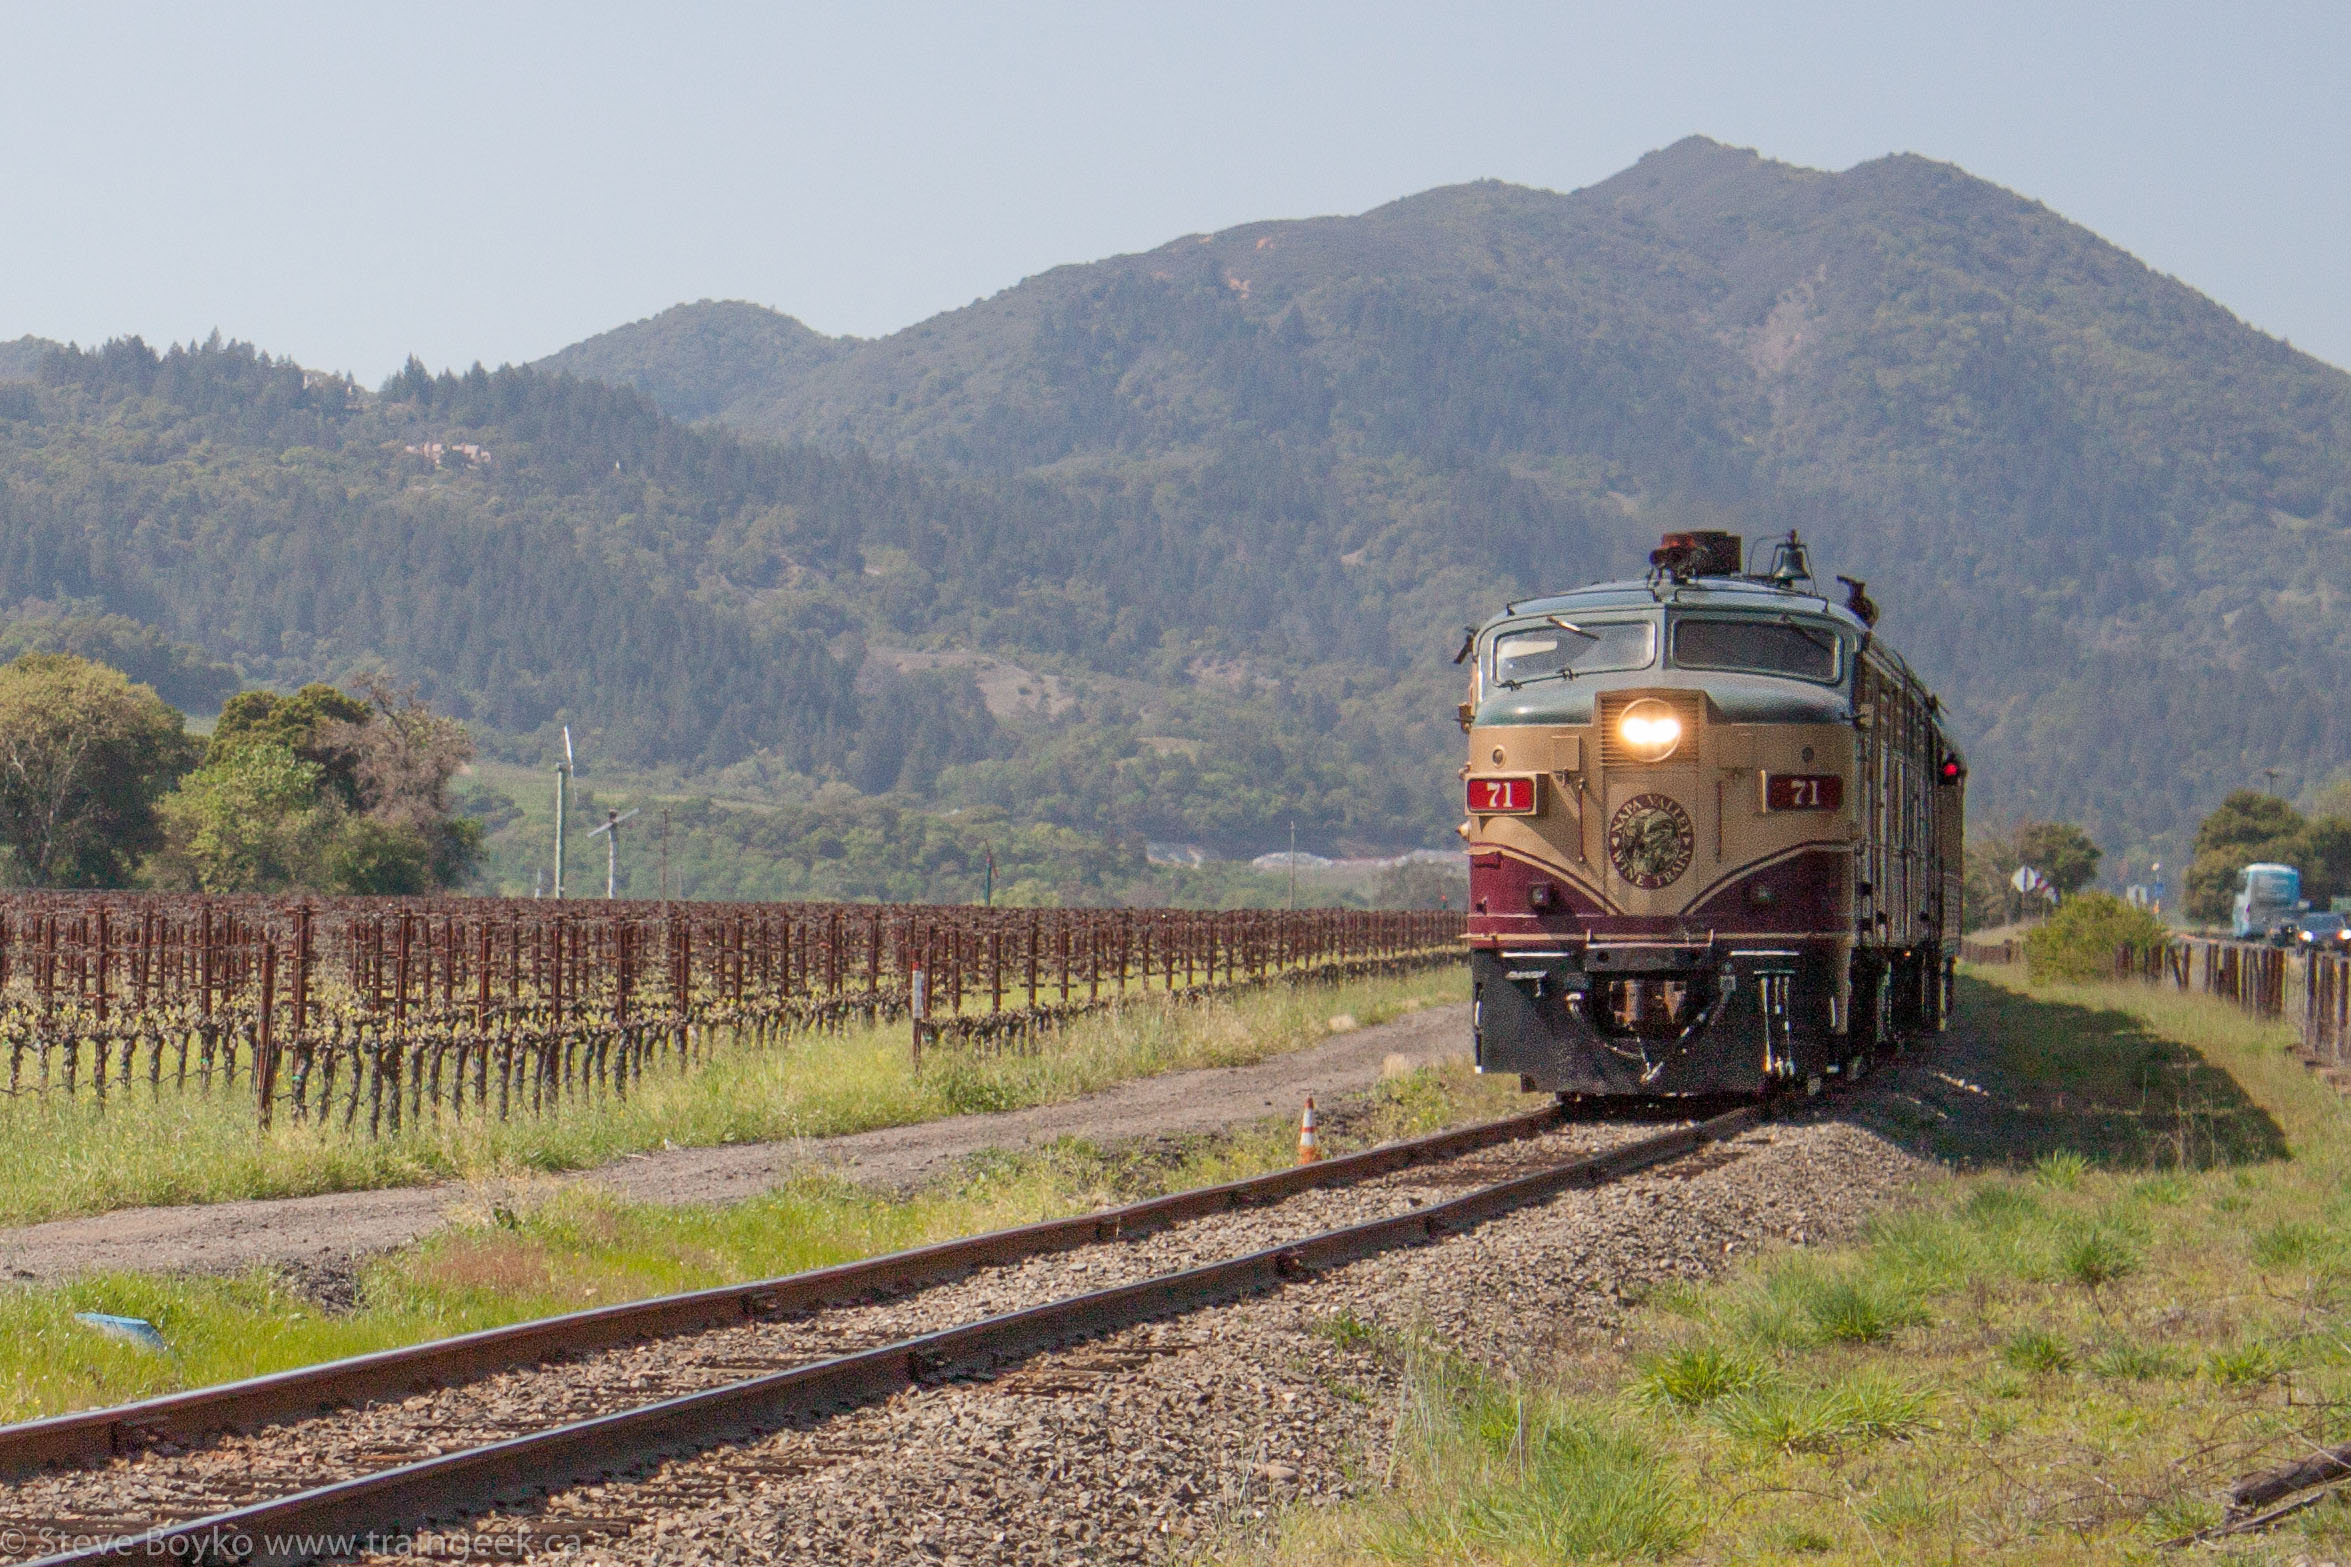 NVRR 71 leads the Napa Valley Wine Train